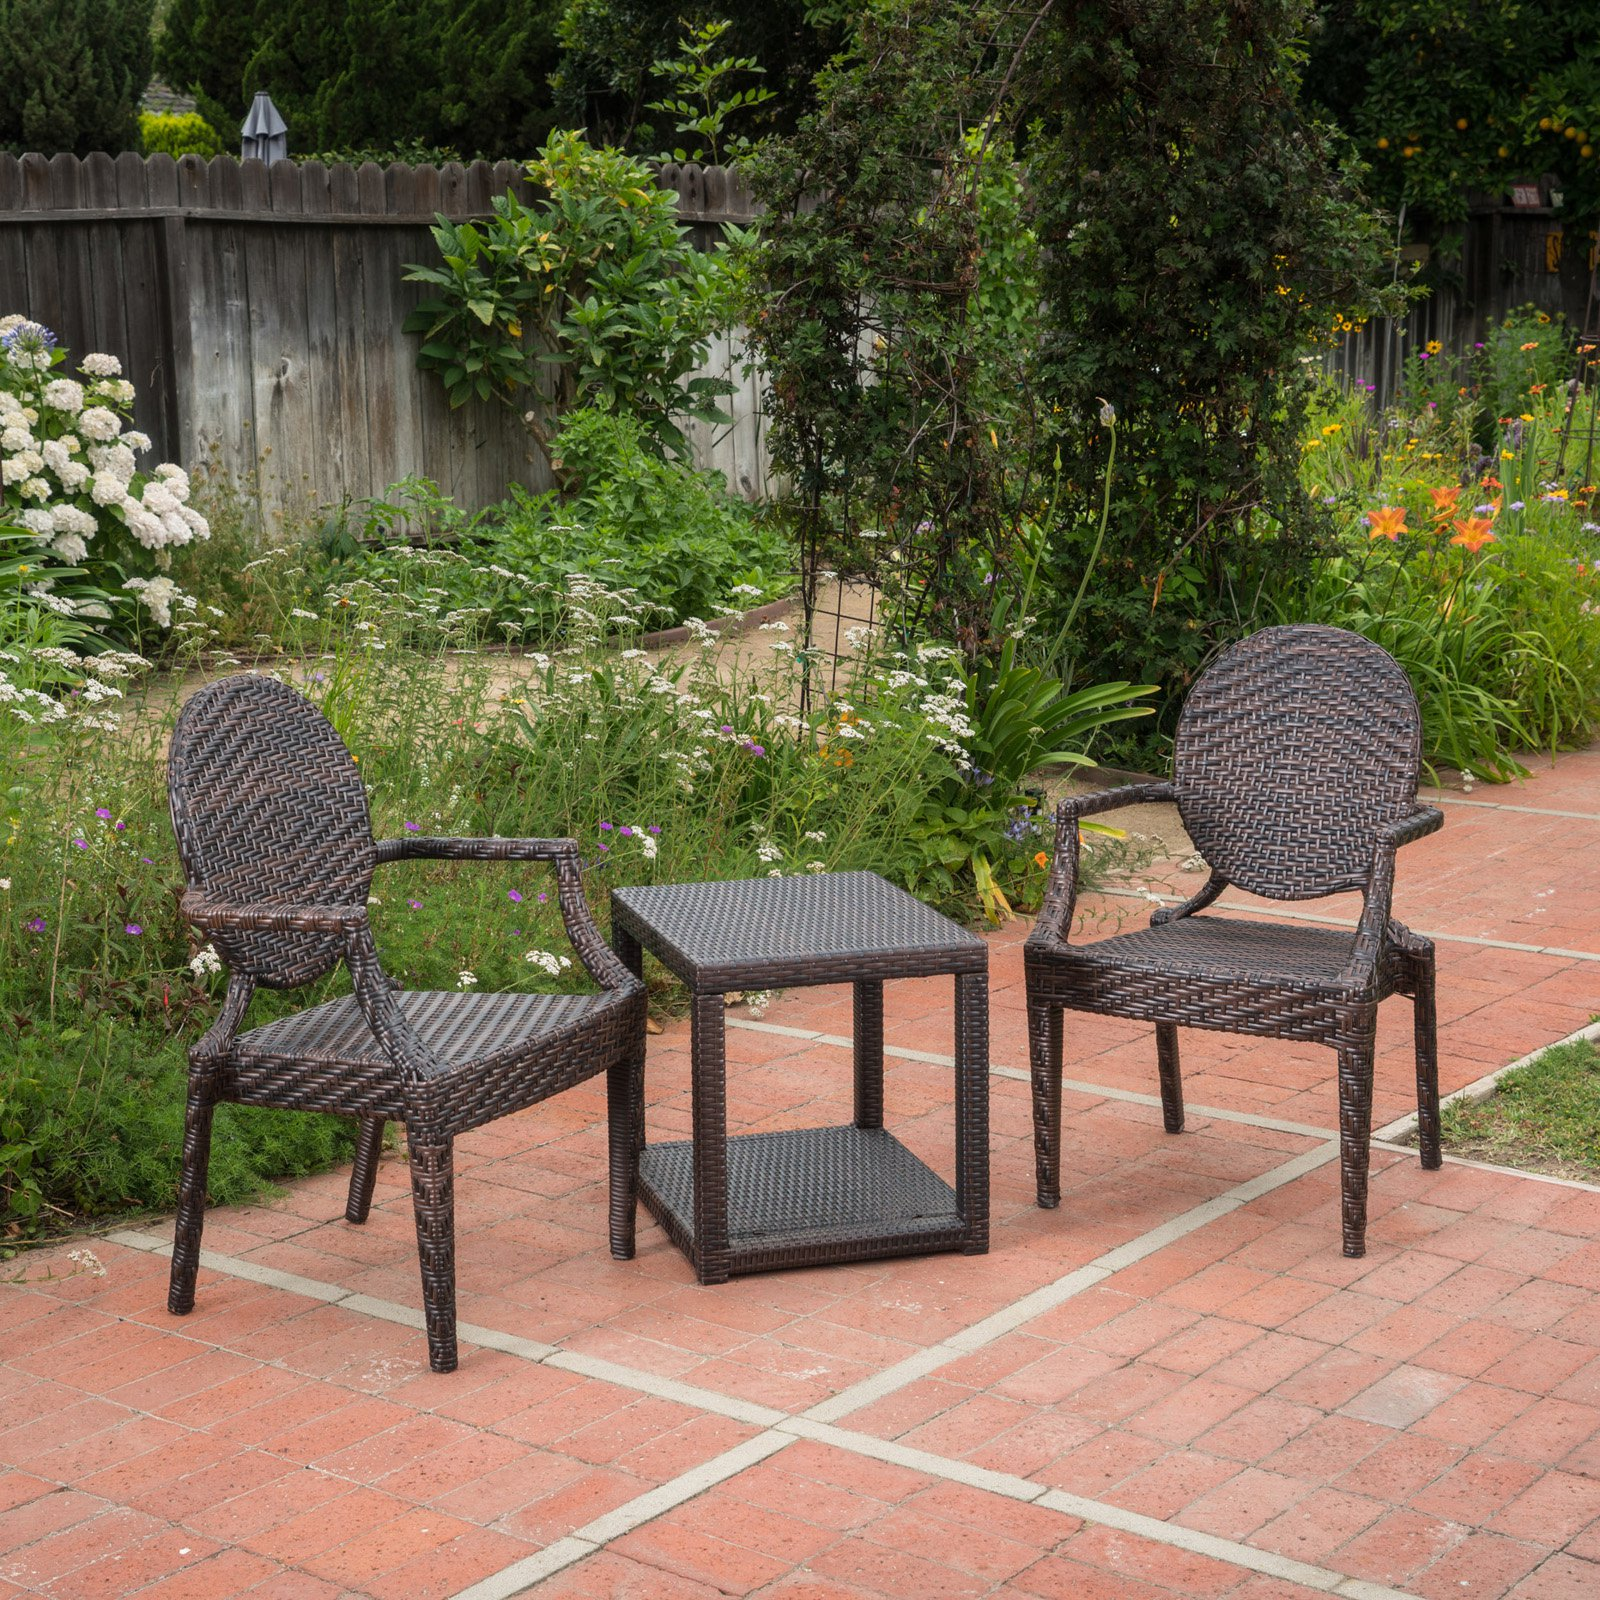 Mckinley Wicker 3 Piece Outdoor Stacking Chair Chat Set